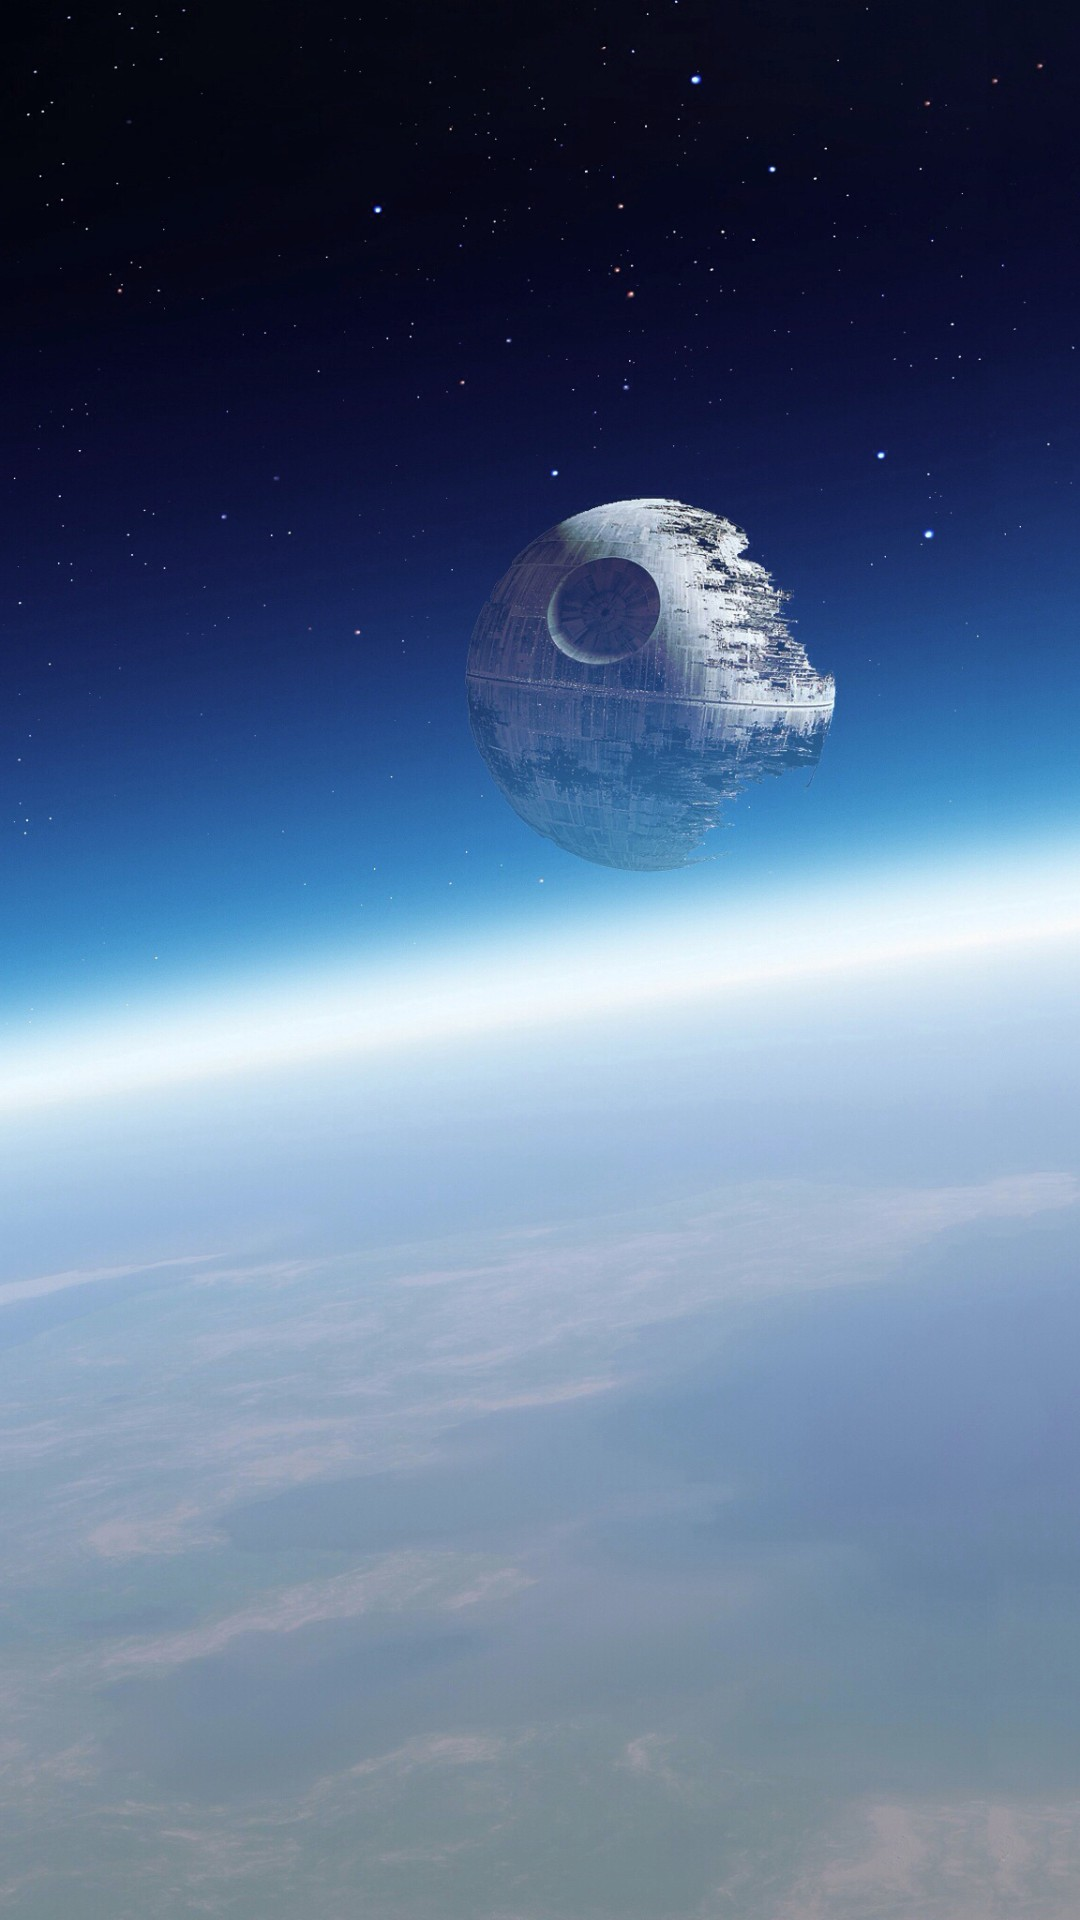 Star Wars Space Background 183 ① Download Free Amazing Hd